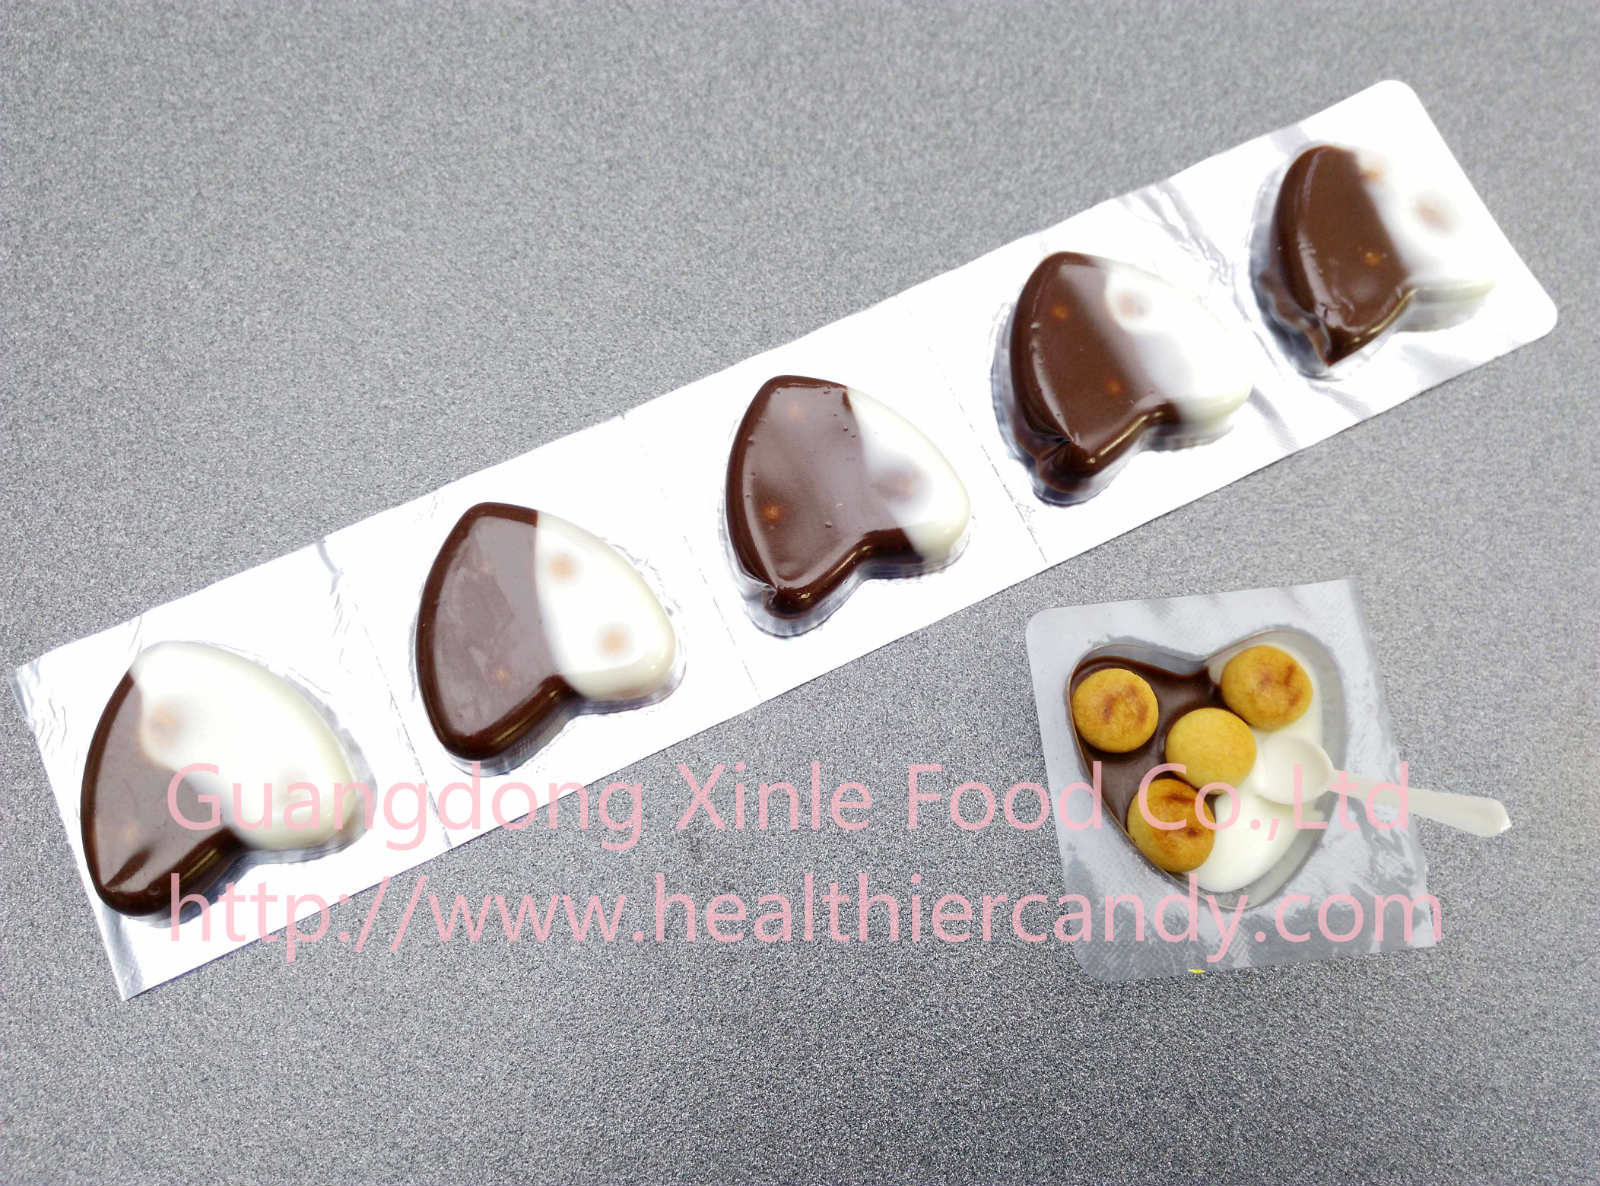 Hot Sale Heart Shape Choclate Taste Sweet and Delicious Promotional and Welcomed Snack